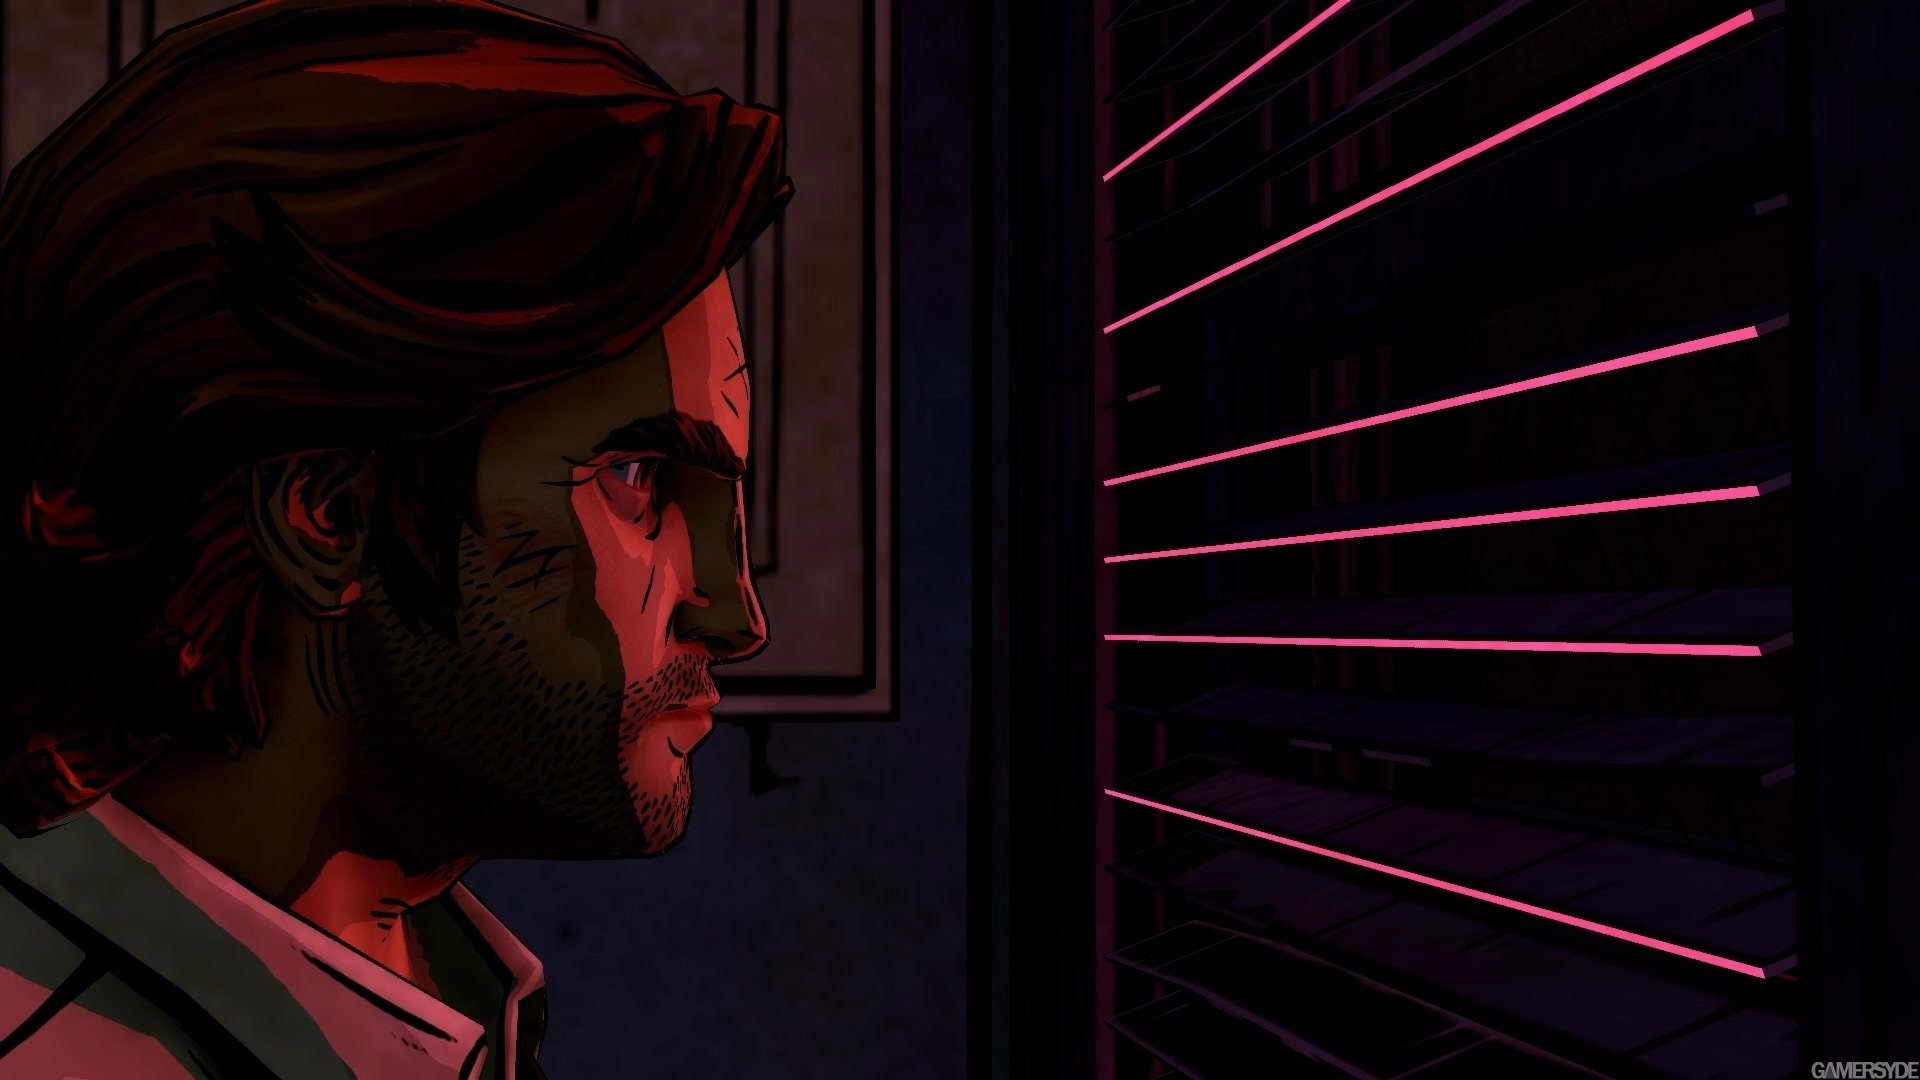 The Wolf Among Us Wallpapers Hd For Desktop Backgrounds